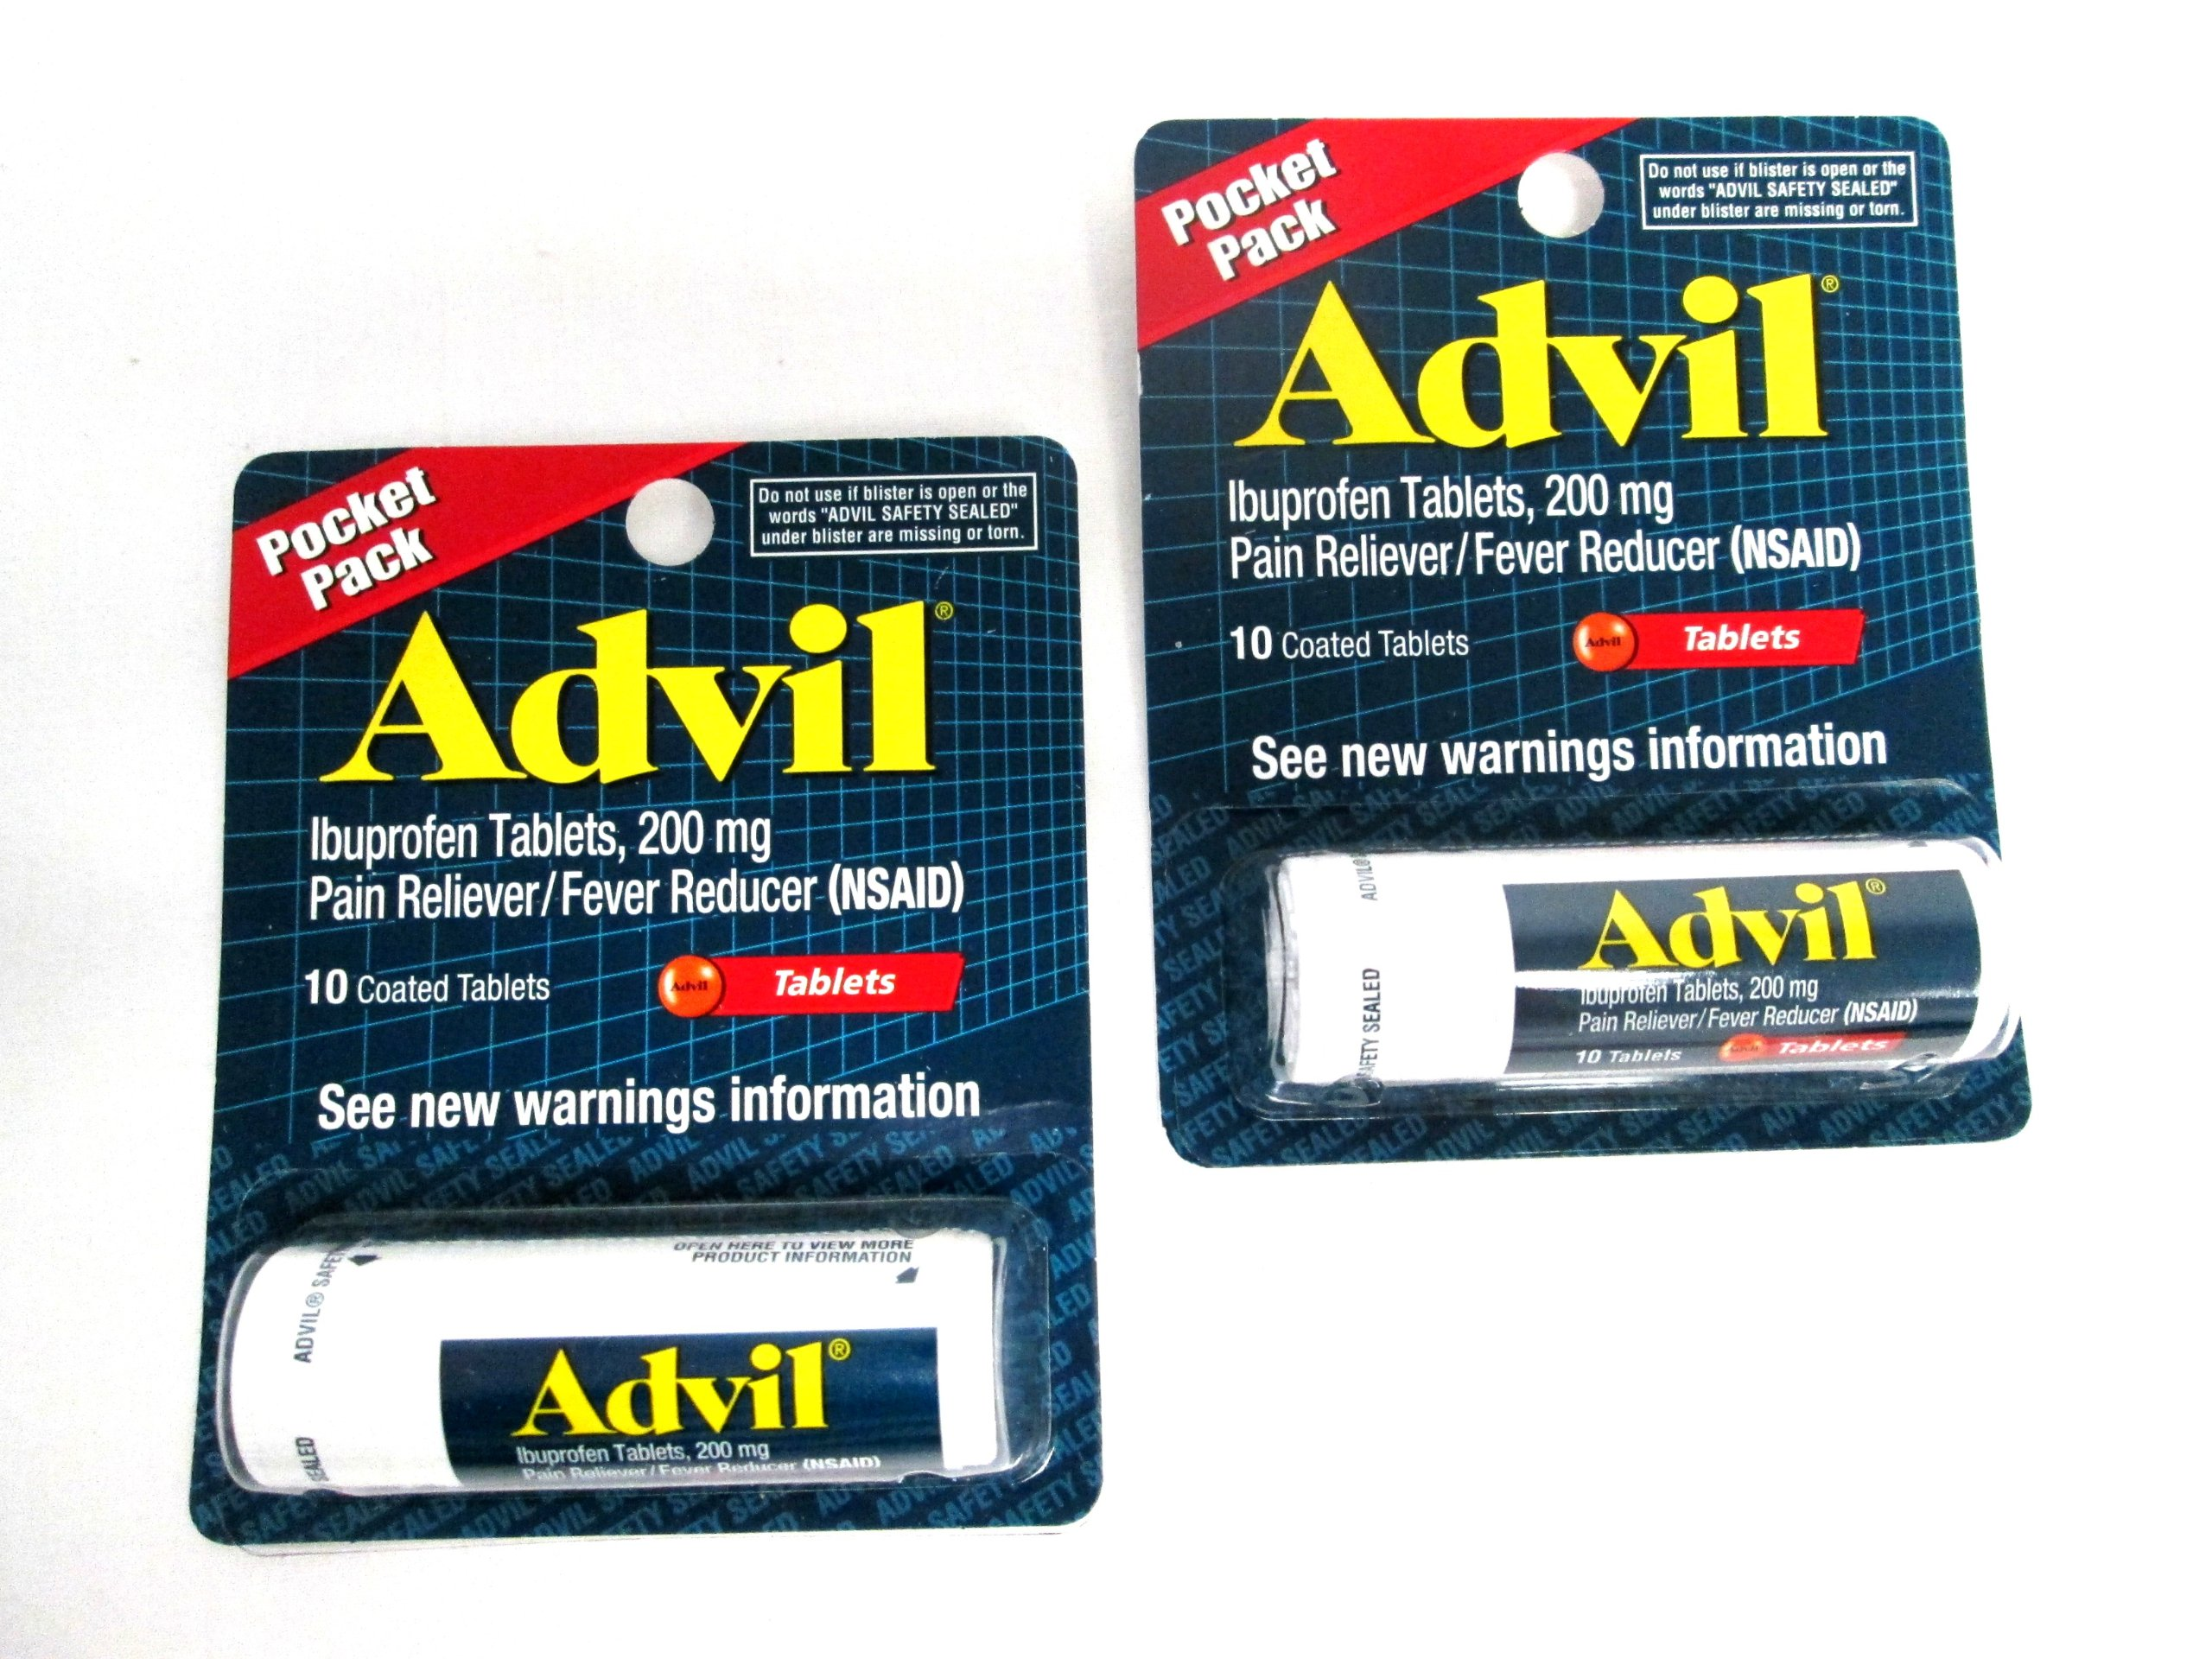 2 Pack of Pocket Pack Advil Pain Reliever / Fever Reducer Ibuprofen Gel Caplets 200mg - 10 Coated Tablets PER Pack (20 Tablets Total)